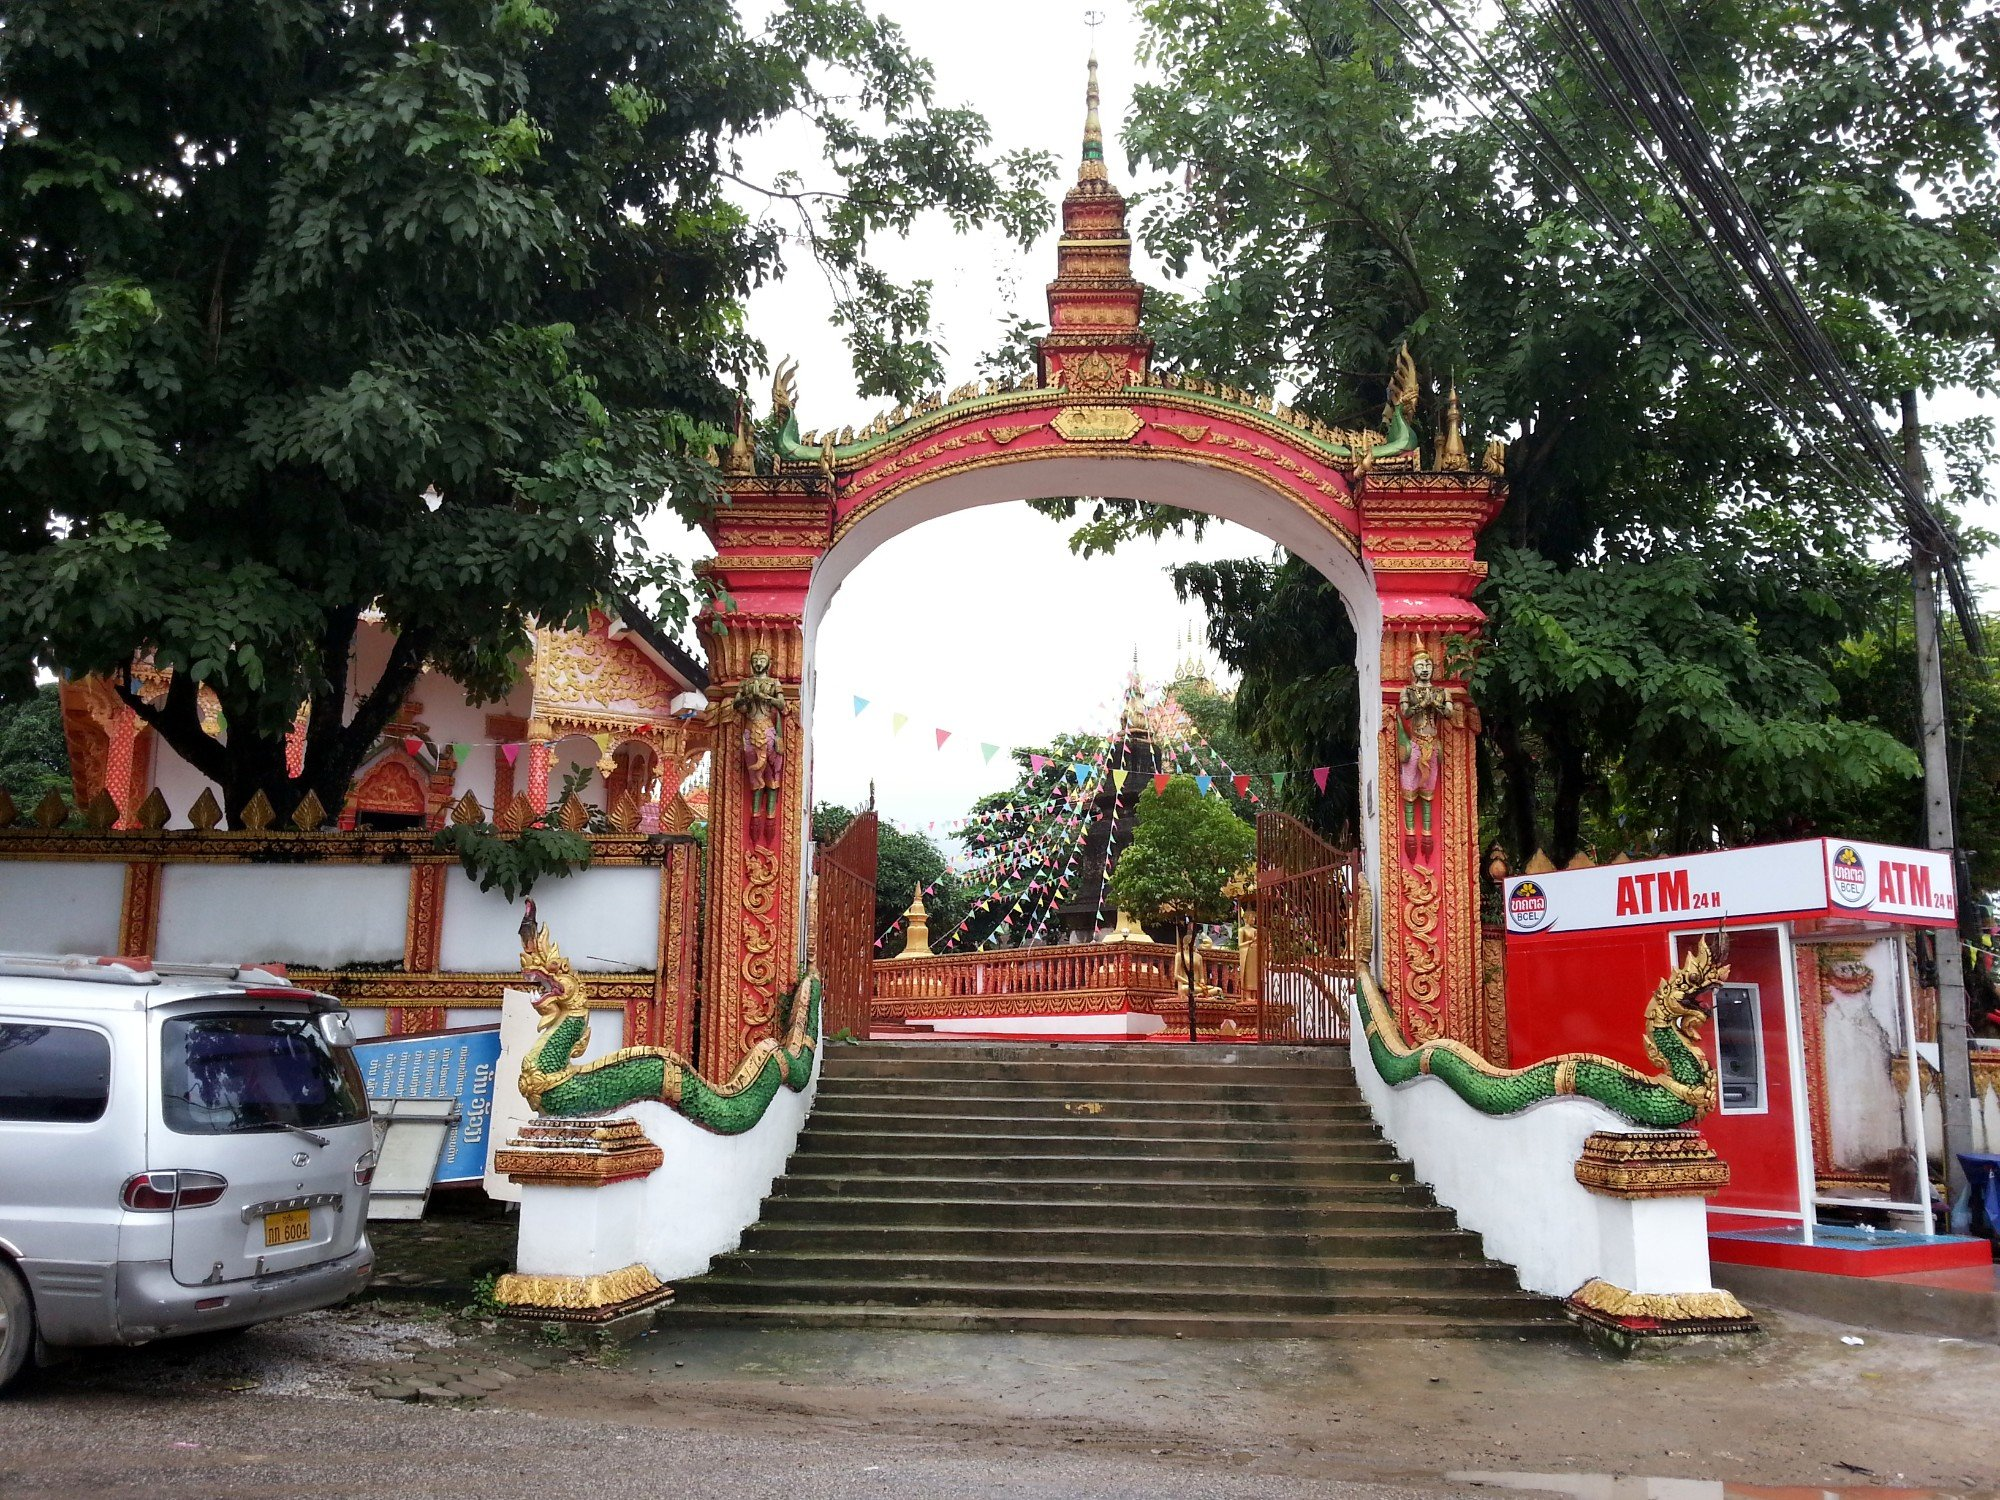 Entrance to Wat That in Vang Vieng